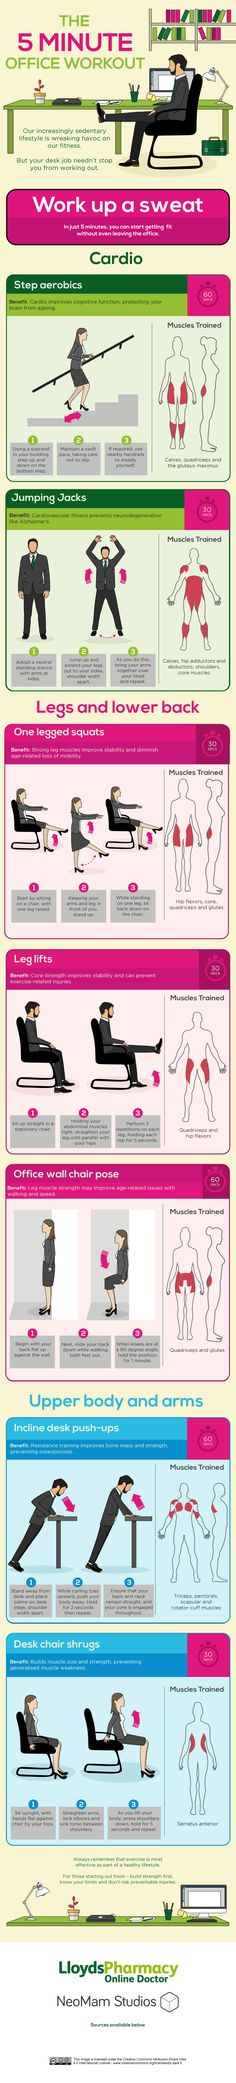 The 5 Minute Office Workout